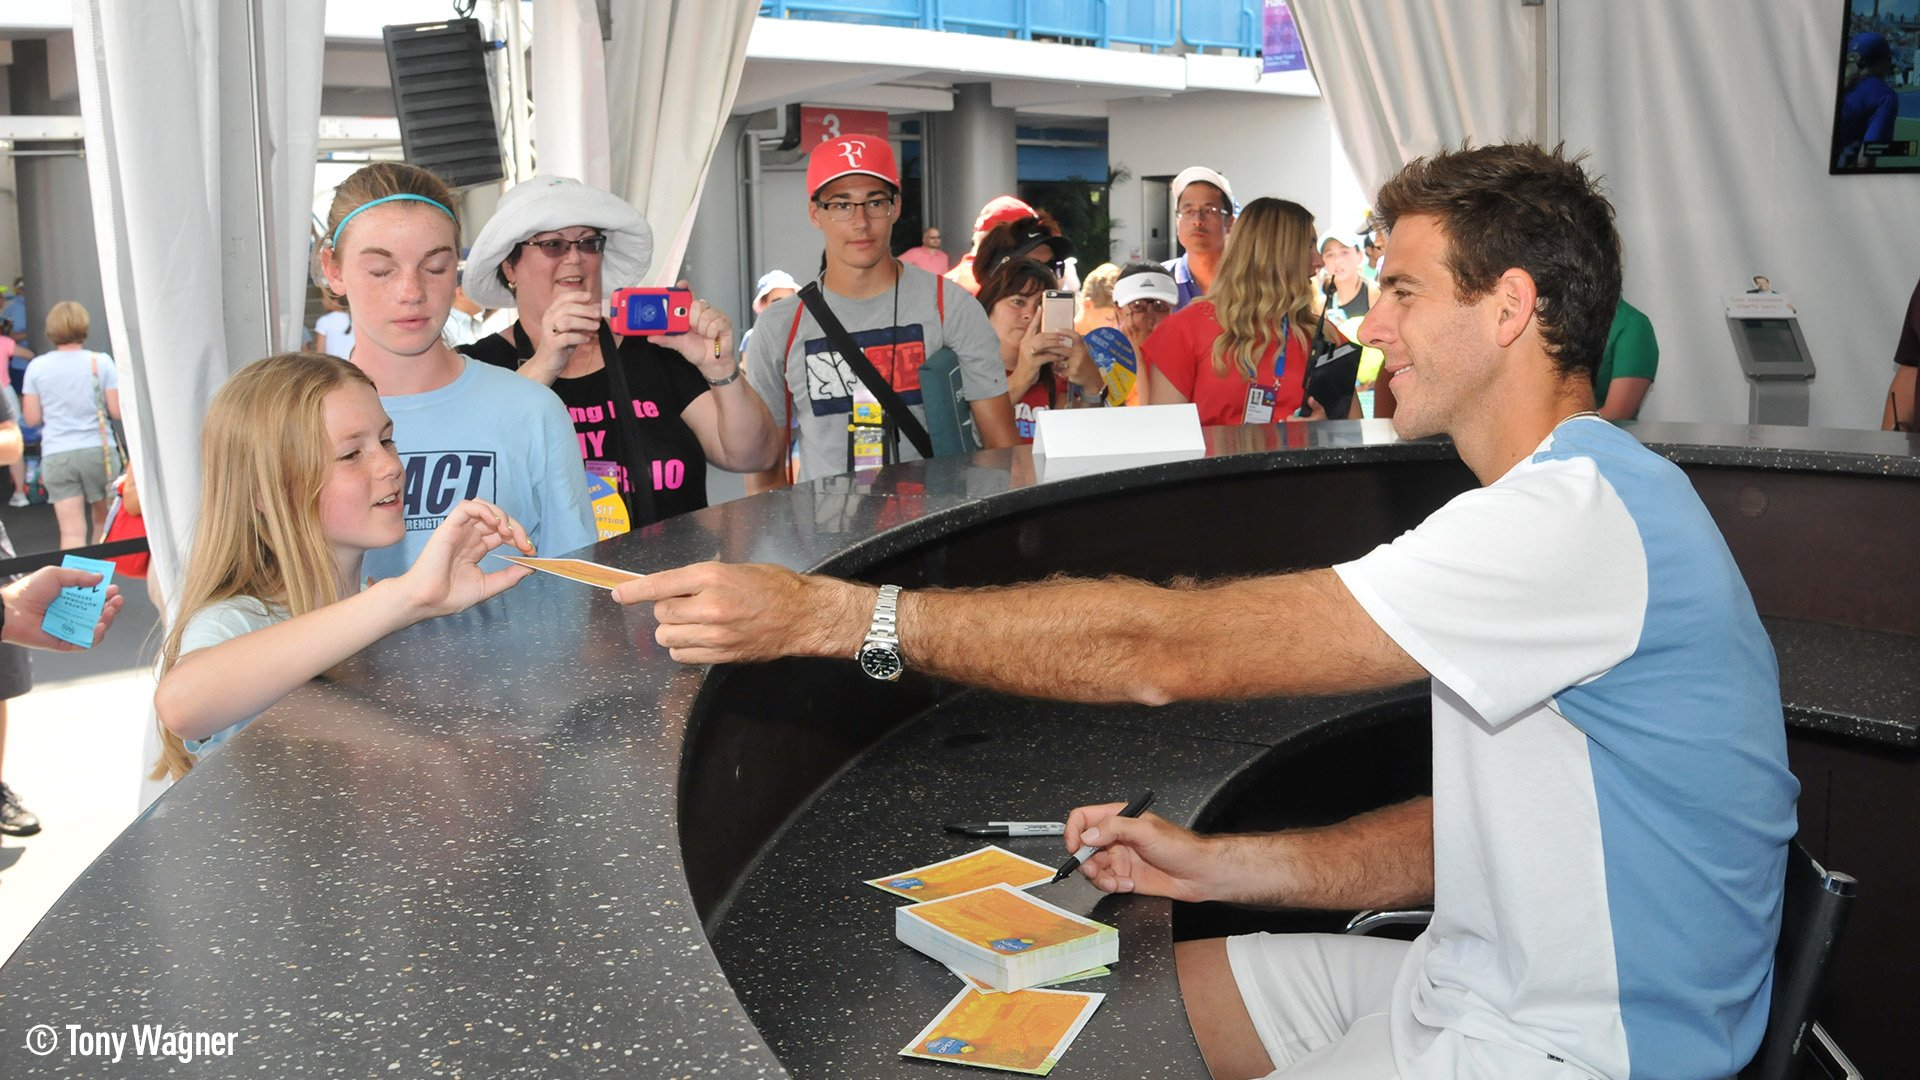 Del Potro was a hit today at @CincyTennis - on and off court! ��https://t.co/89HI8B7CWG #ATPMasters1000 https://t.co/mR3NVAN8EY